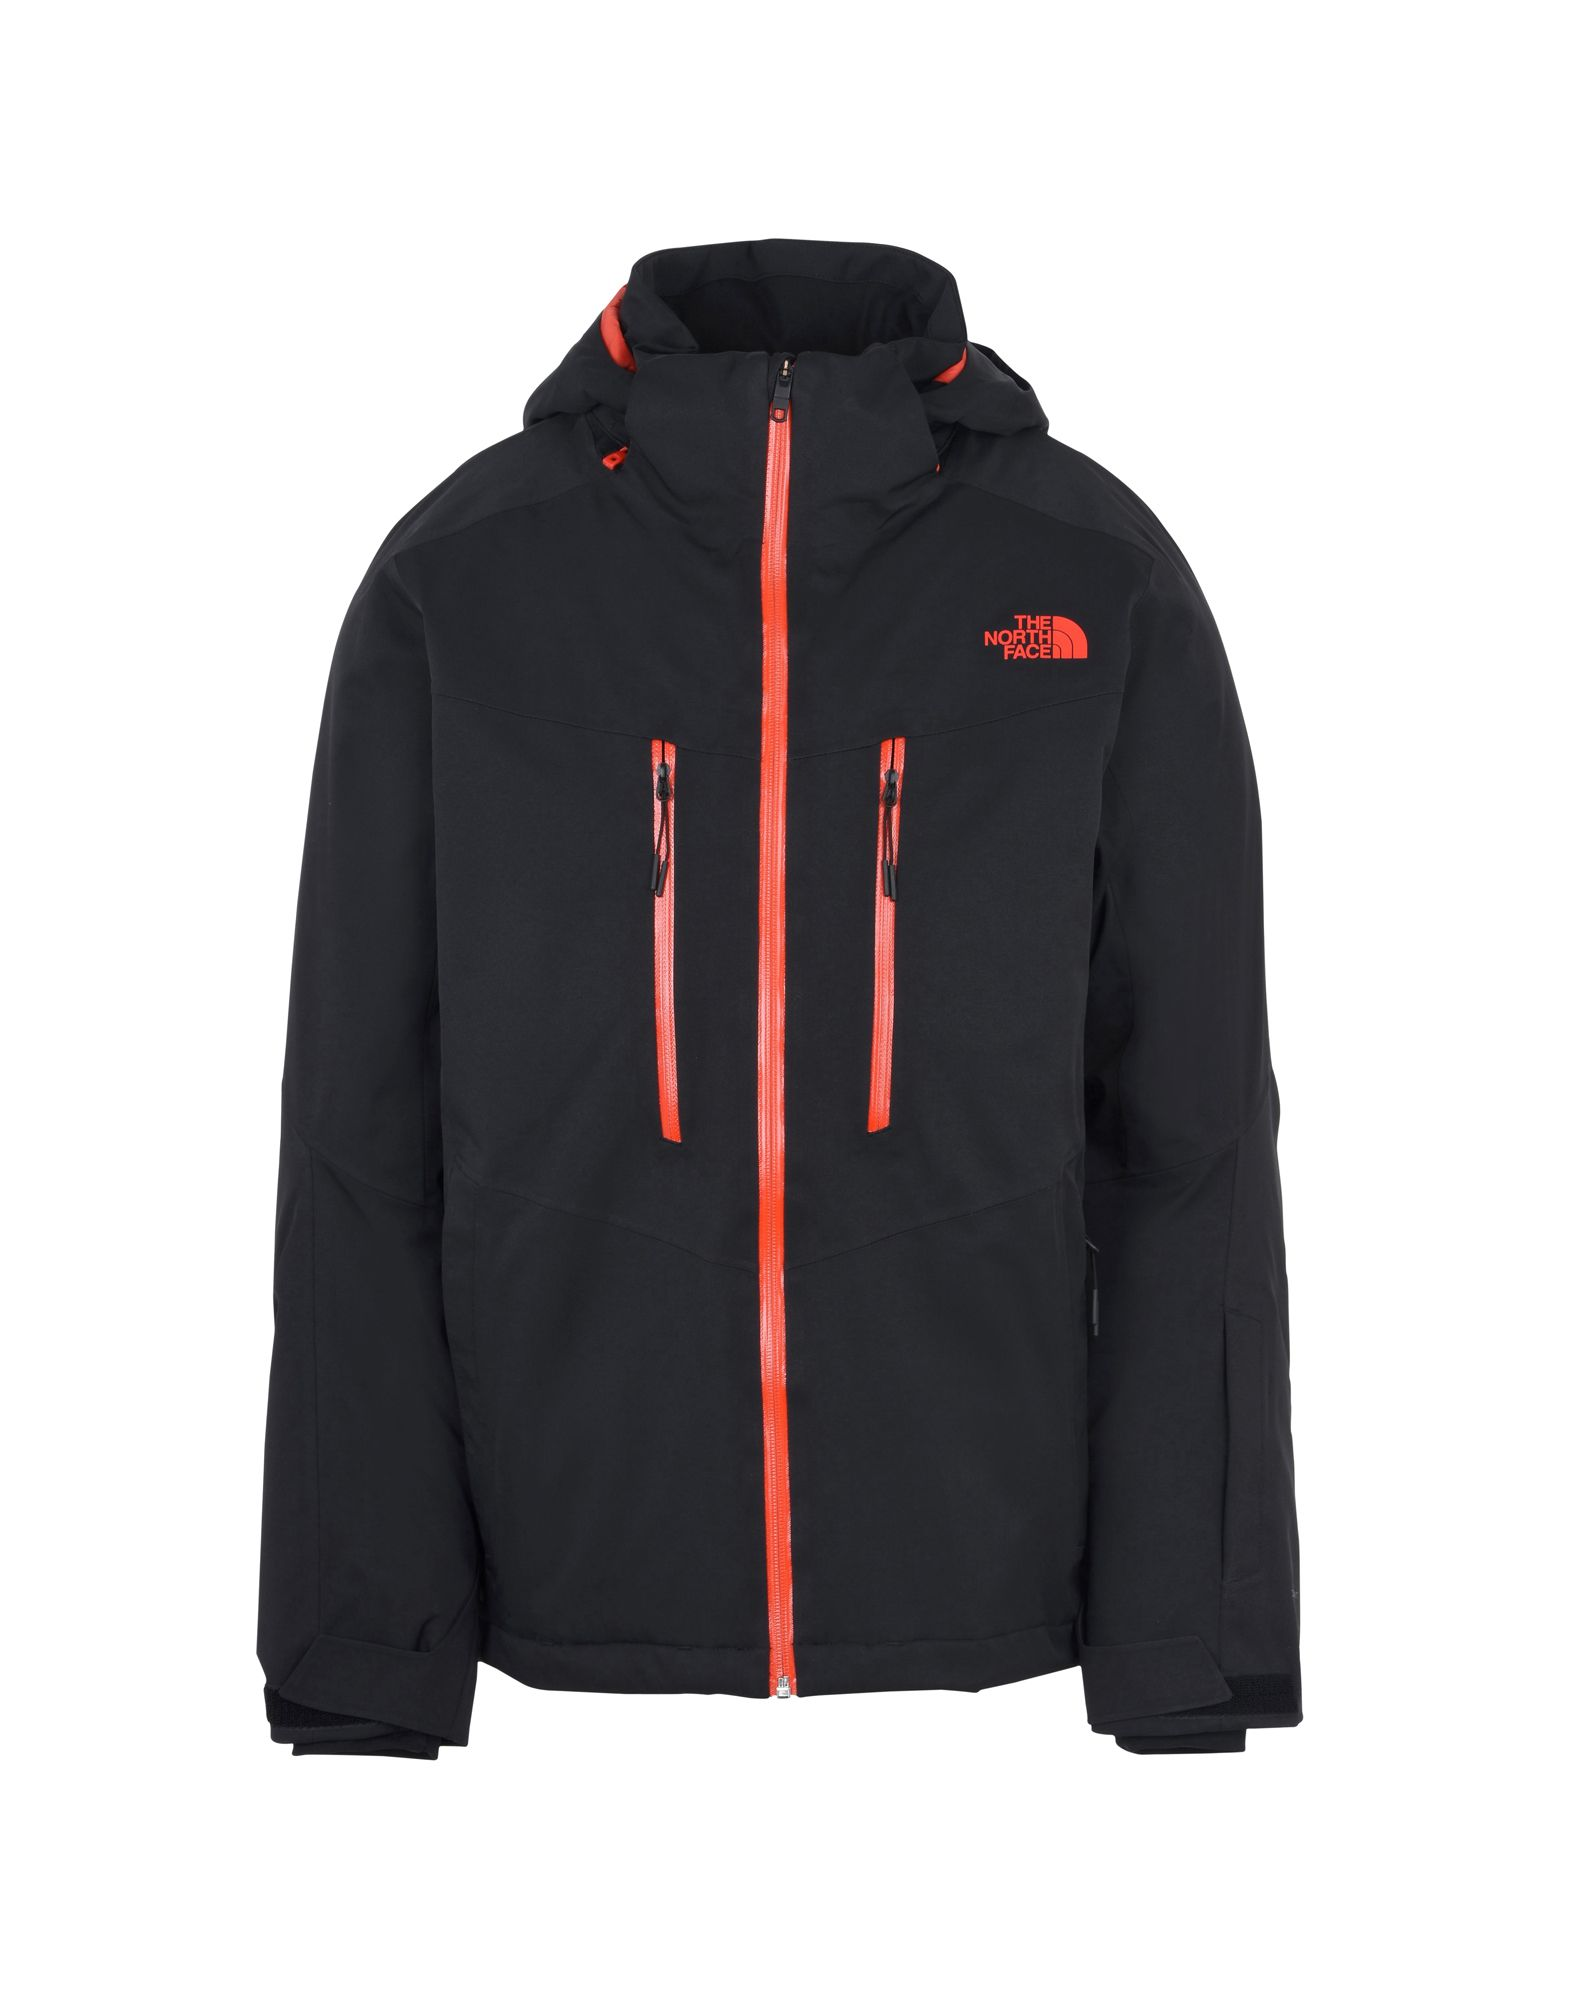 Giubbotto The North Face M Chakal Waterproof Ski  Jacket - Uomo - Acquista online su